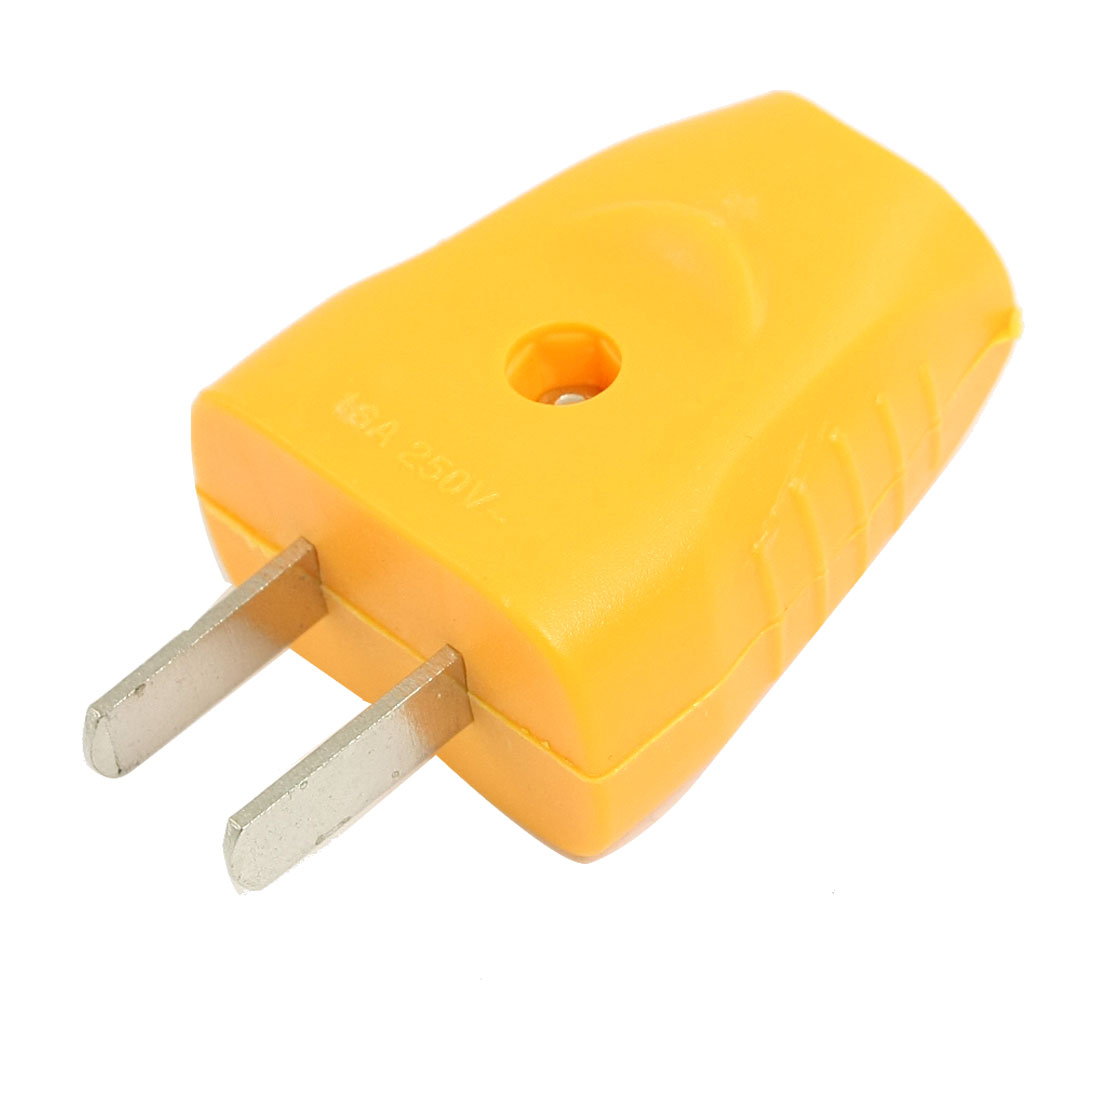 US Plug AC 250V 16A Power Jack Adapter Yellow